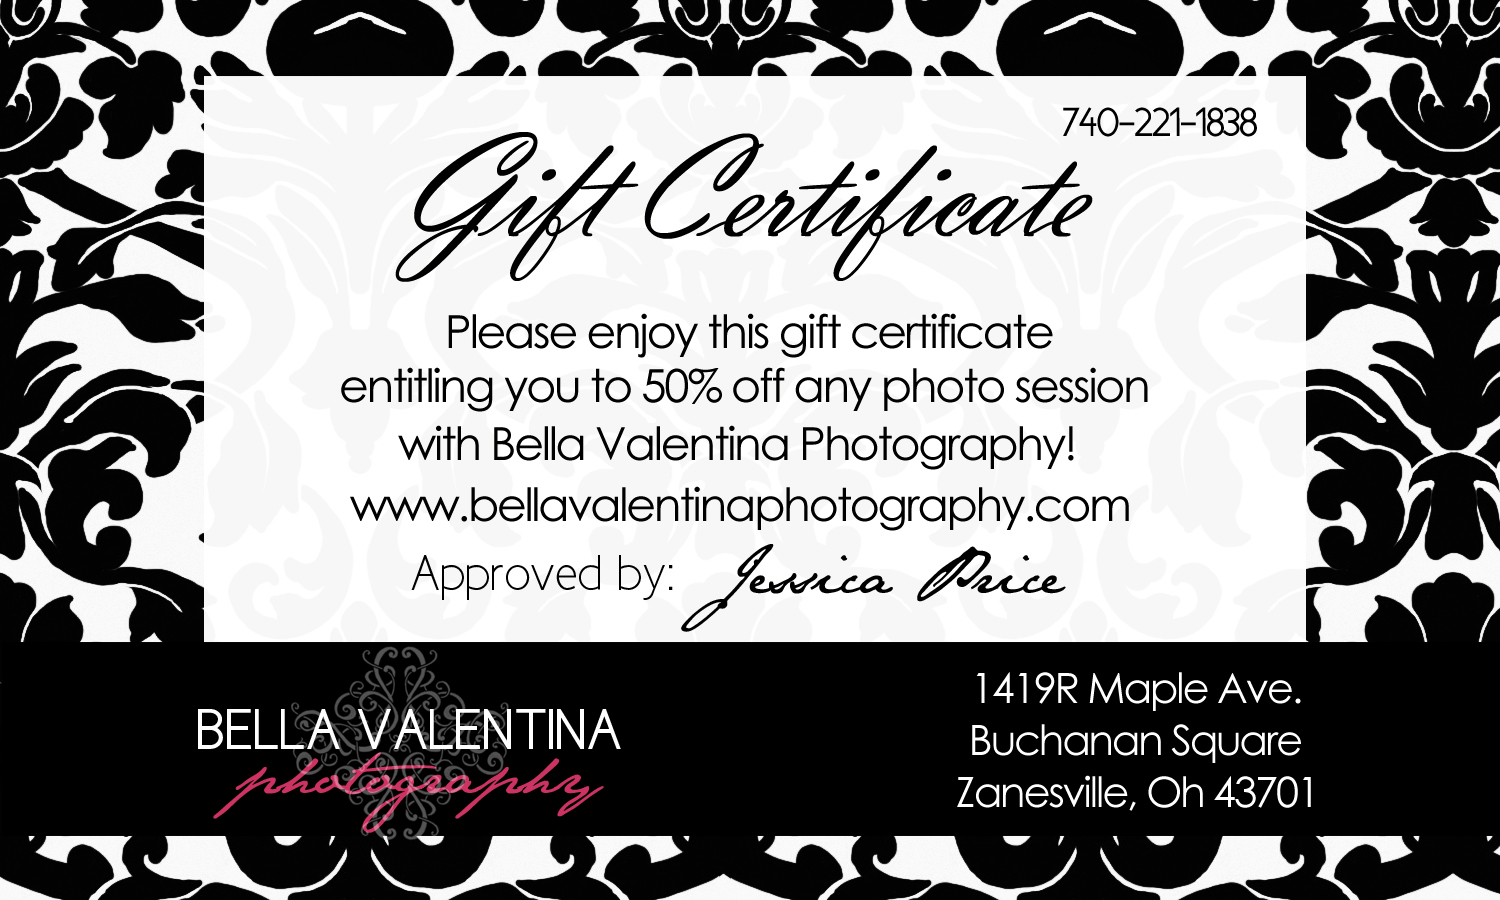 Photography gift certificate templates gallery templates example photography gift certificate templates images templates example photography gift certificate templates gallery templates example photography gift alramifo Images